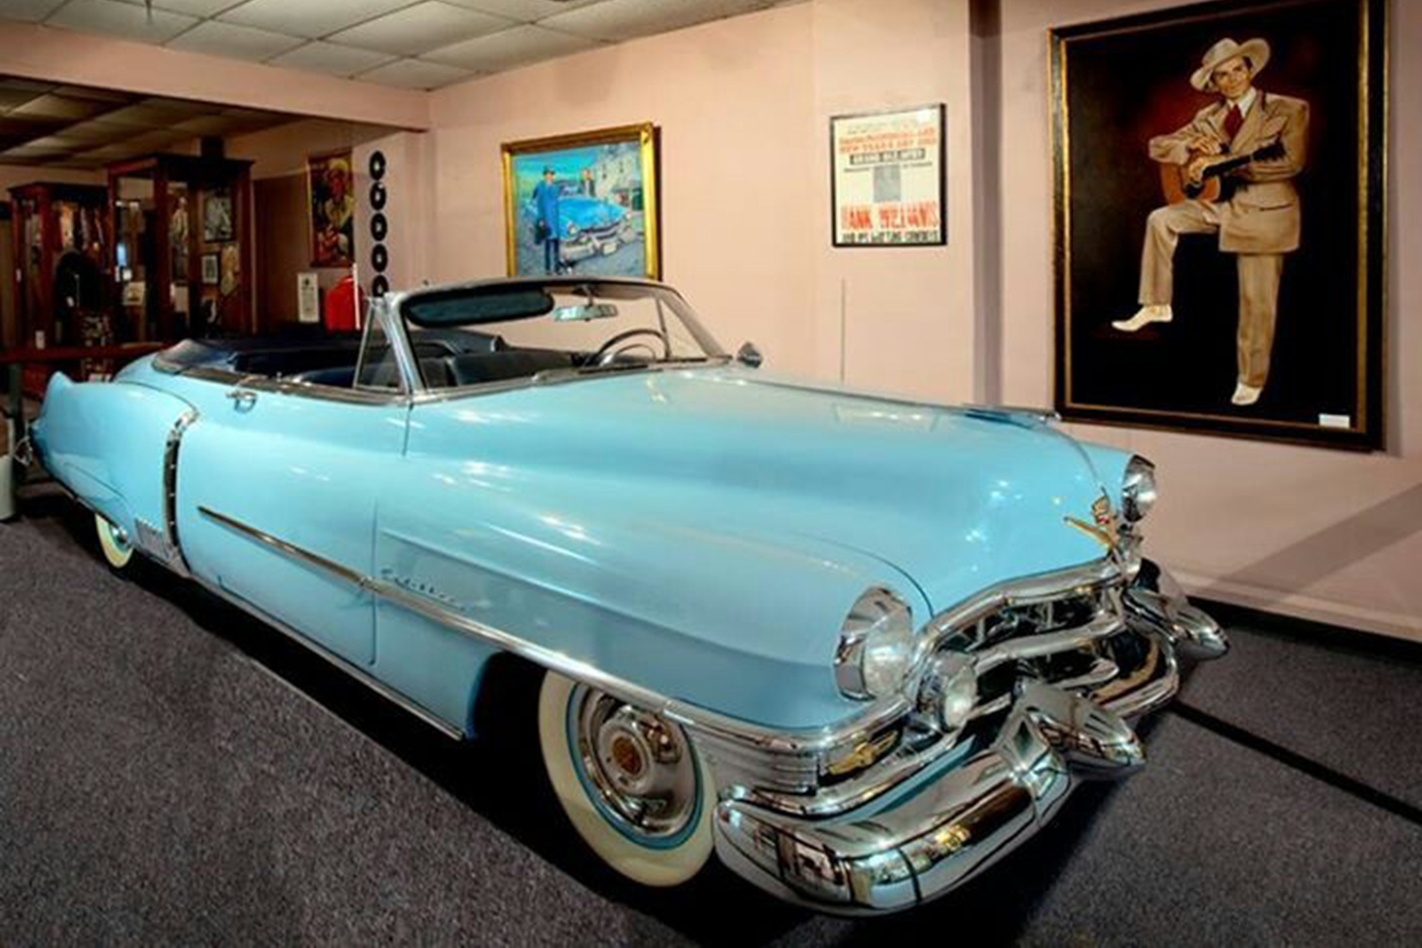 Hank Williams' Cadillac